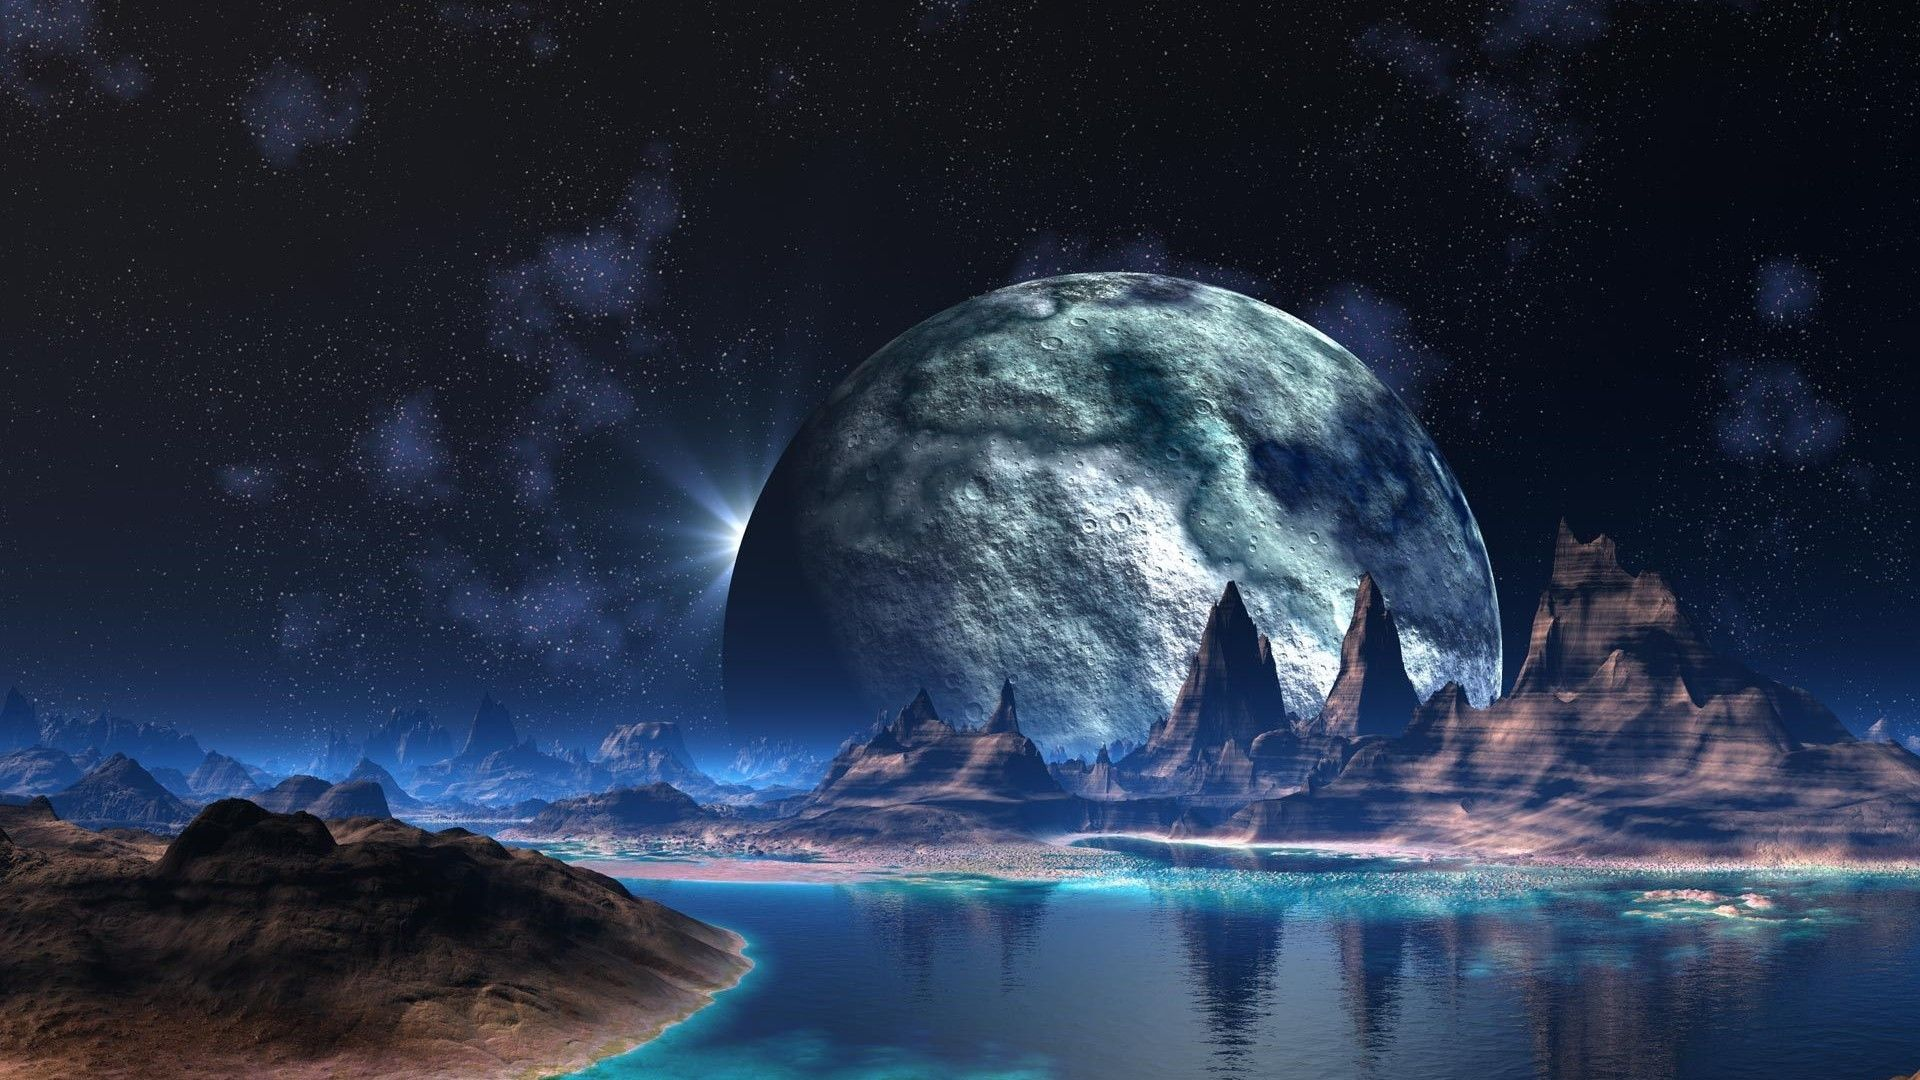 alien world | fantasy hd wallpapers | pinterest | hd wallpaper